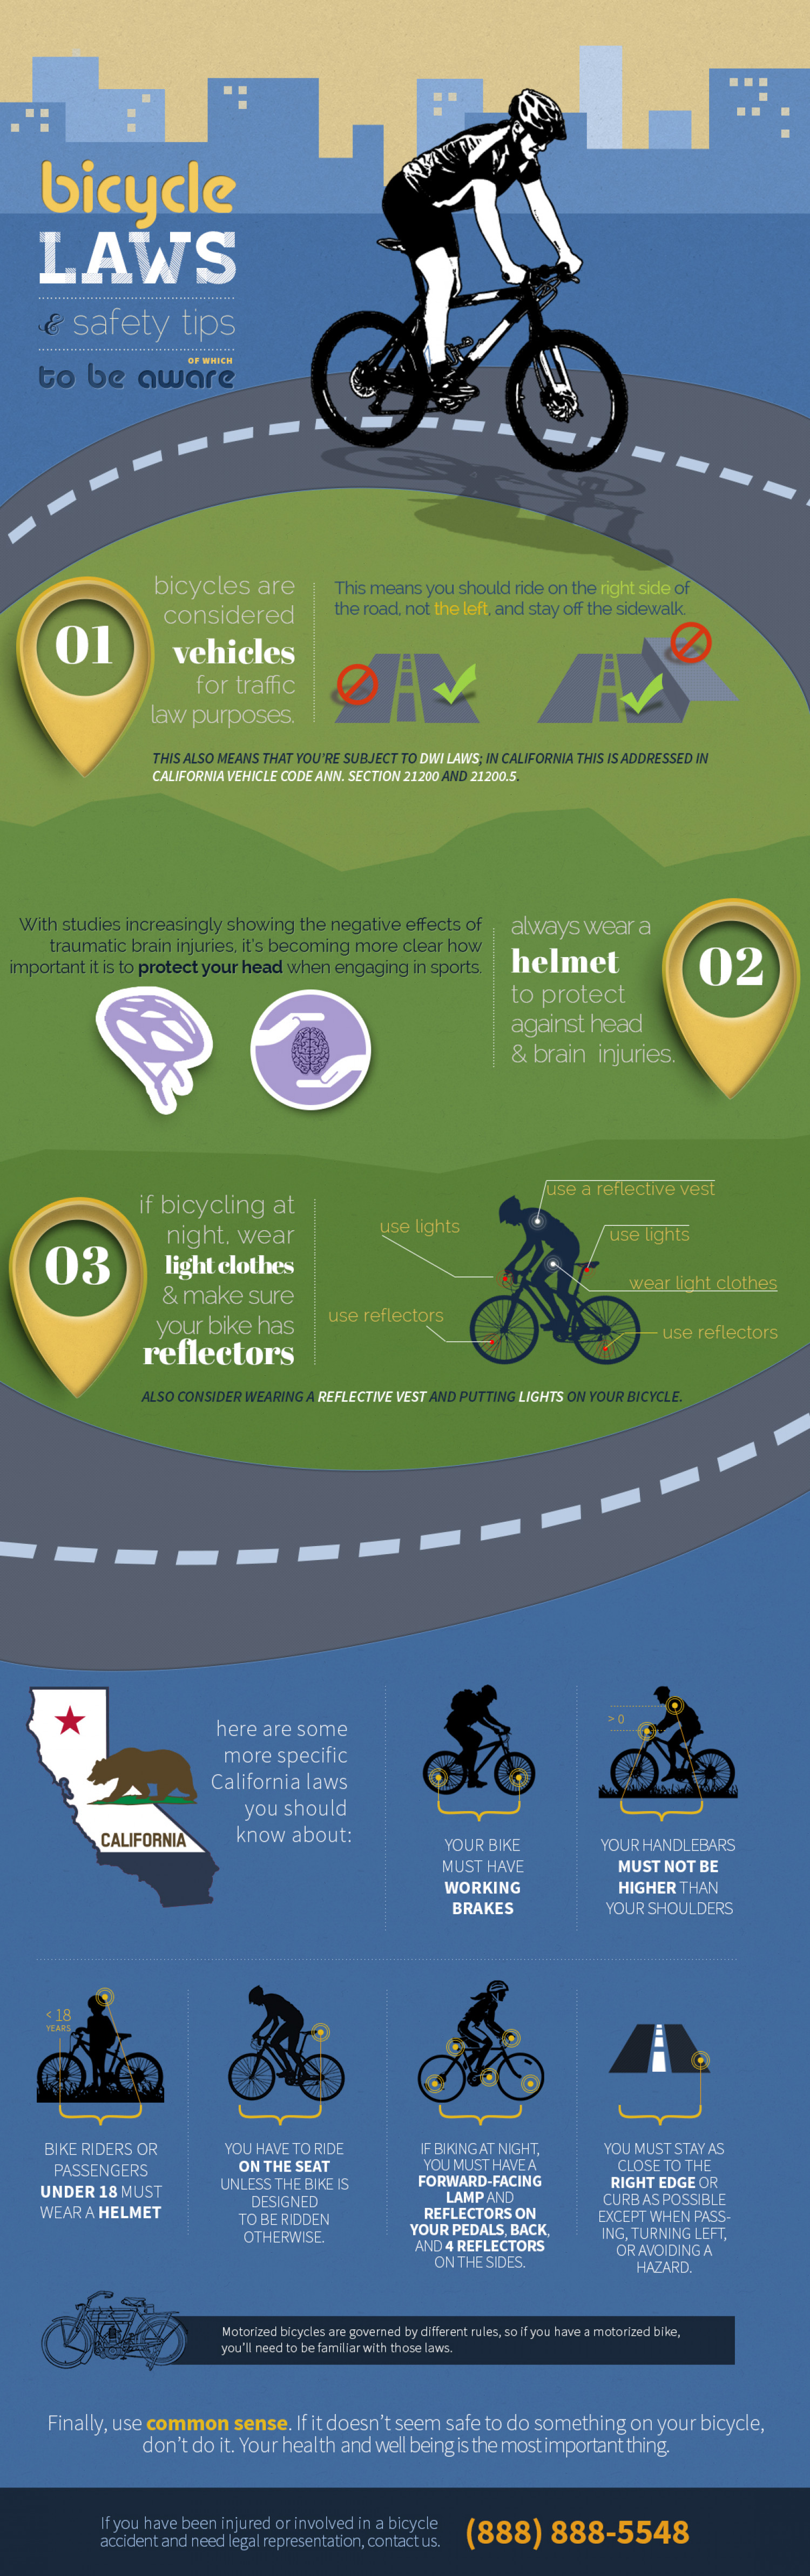 Bicycle laws Infographic